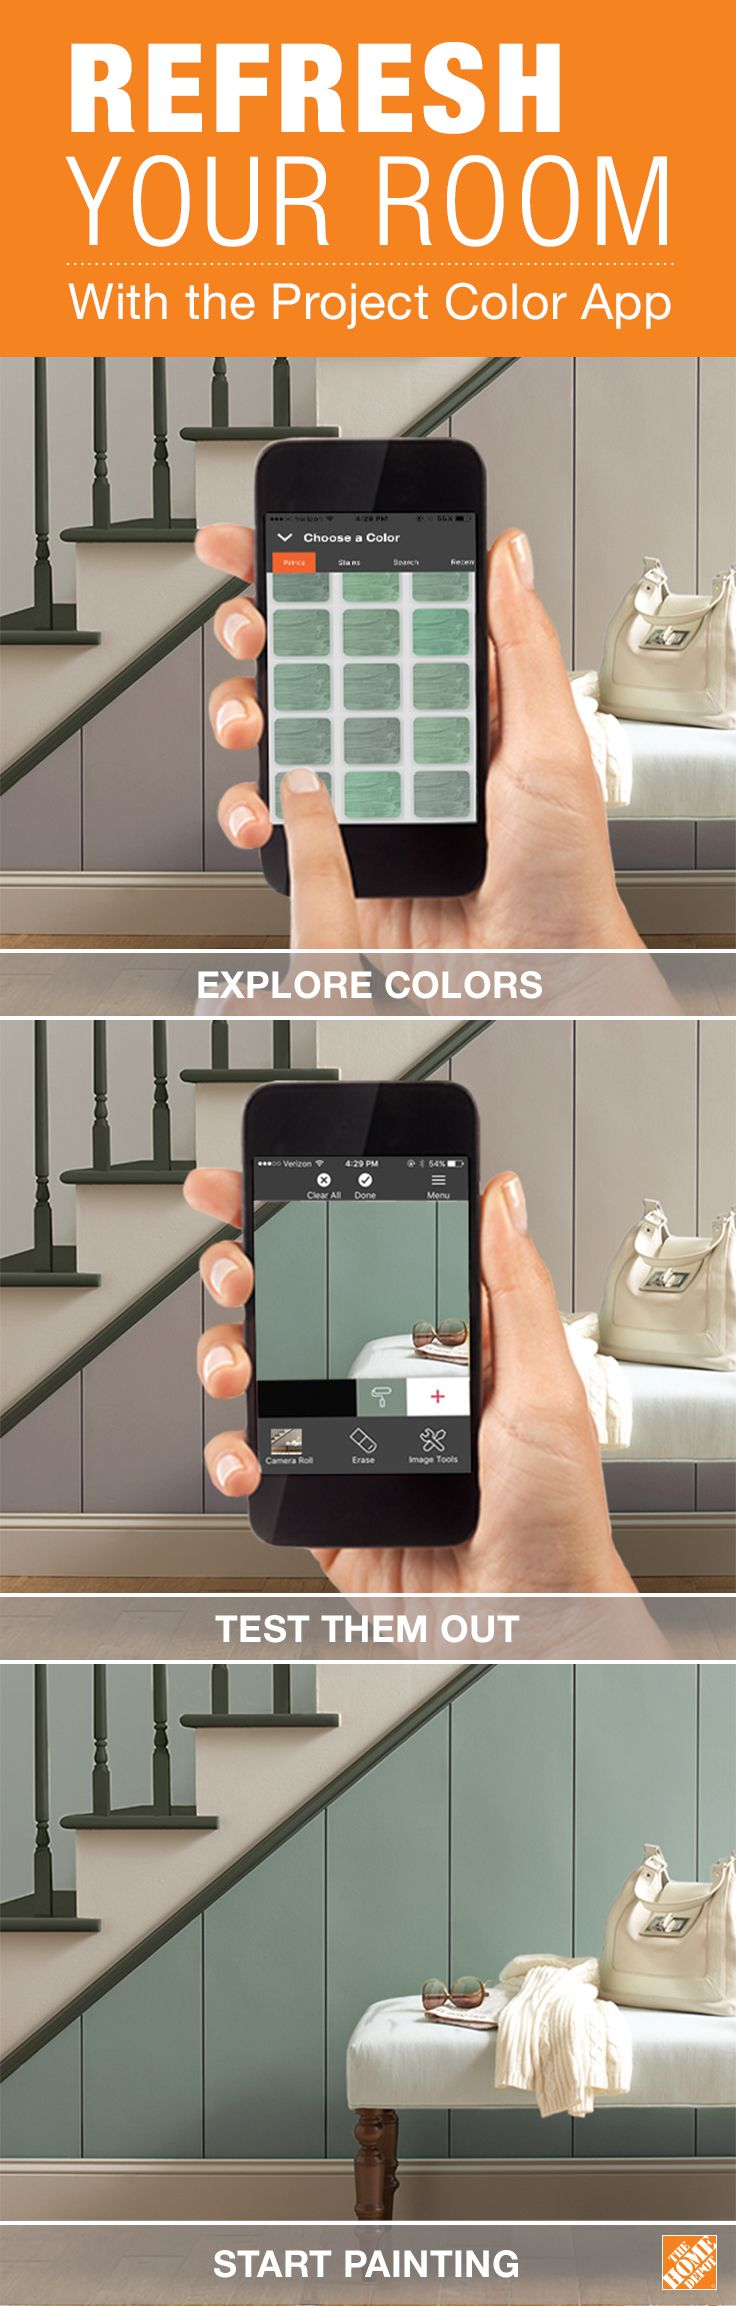 The Project Color iPhone app by The Home Depot allows you to try out paint…